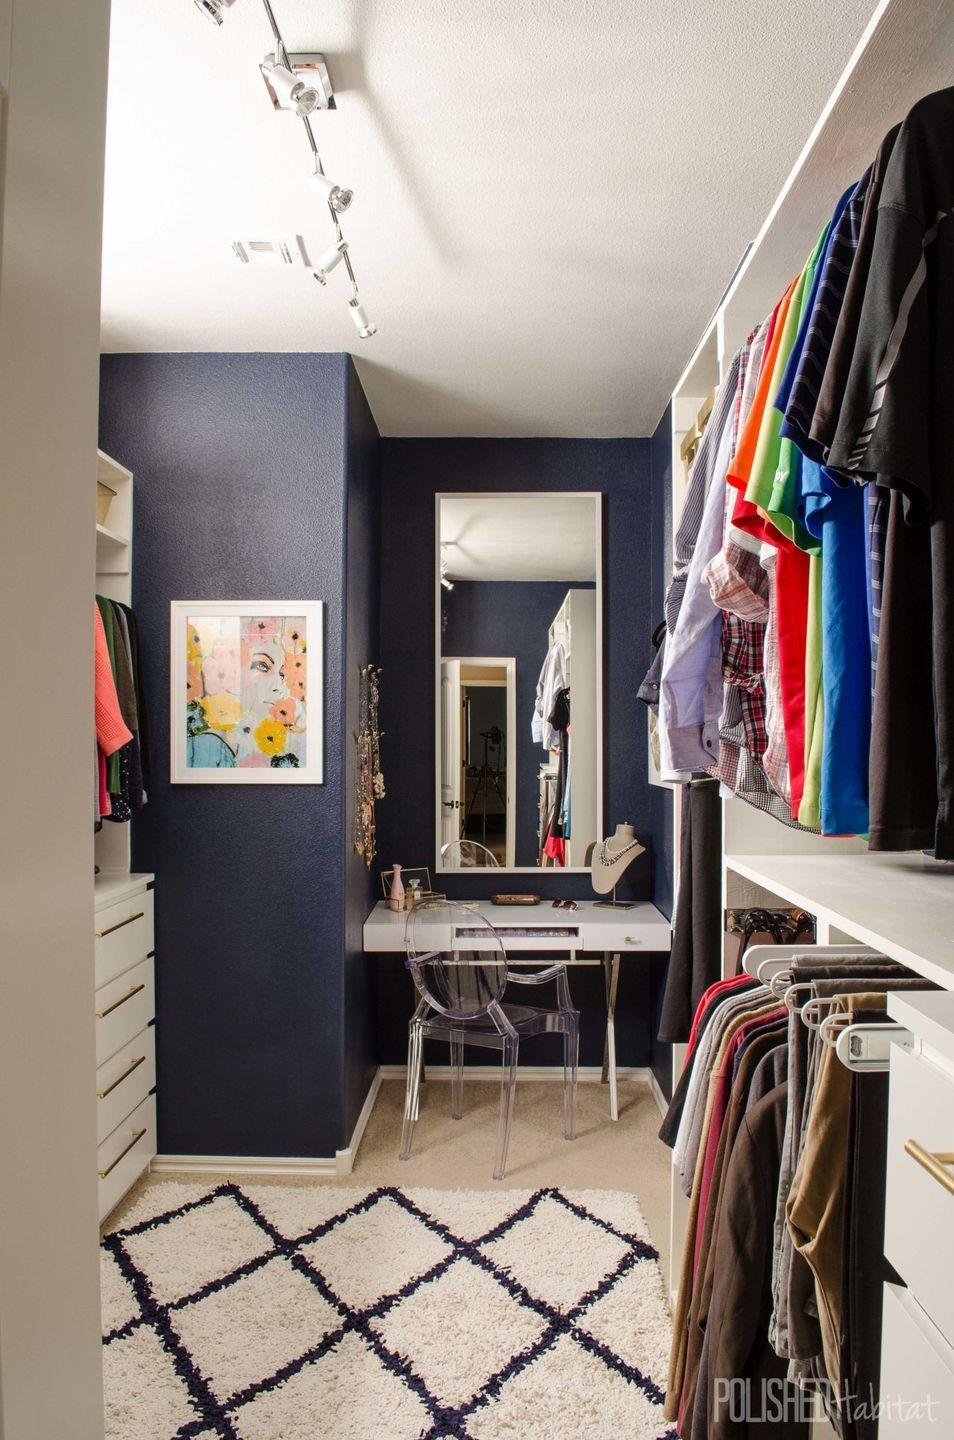 """<p>Instead of trying to make a unit tucked into a nook work, this homeowner embraced the area for her vanity and added bonus clothing storage with extra dressers.</p><p><em><a href=""""http://www.polishedhabitat.com/2015/master-closet-organization/"""" rel=""""nofollow noopener"""" target=""""_blank"""" data-ylk=""""slk:See more at Polished Habitat »"""" class=""""link rapid-noclick-resp"""">See more at Polished Habitat »</a></em></p><p><strong>What you'll need: </strong><span class=""""redactor-invisible-space"""">closet storage system, $124, <a href=""""https://www.amazon.com/ClosetMaid-22875-ShelfTrack-Adjustable-Organizer/dp/B0026SRX5Y/?tag=syn-yahoo-20&ascsubtag=%5Bartid%7C2139.g.36060899%5Bsrc%7Cyahoo-us"""" rel=""""nofollow noopener"""" target=""""_blank"""" data-ylk=""""slk:amazon.com"""" class=""""link rapid-noclick-resp"""">amazon.com</a></span><br></p>"""